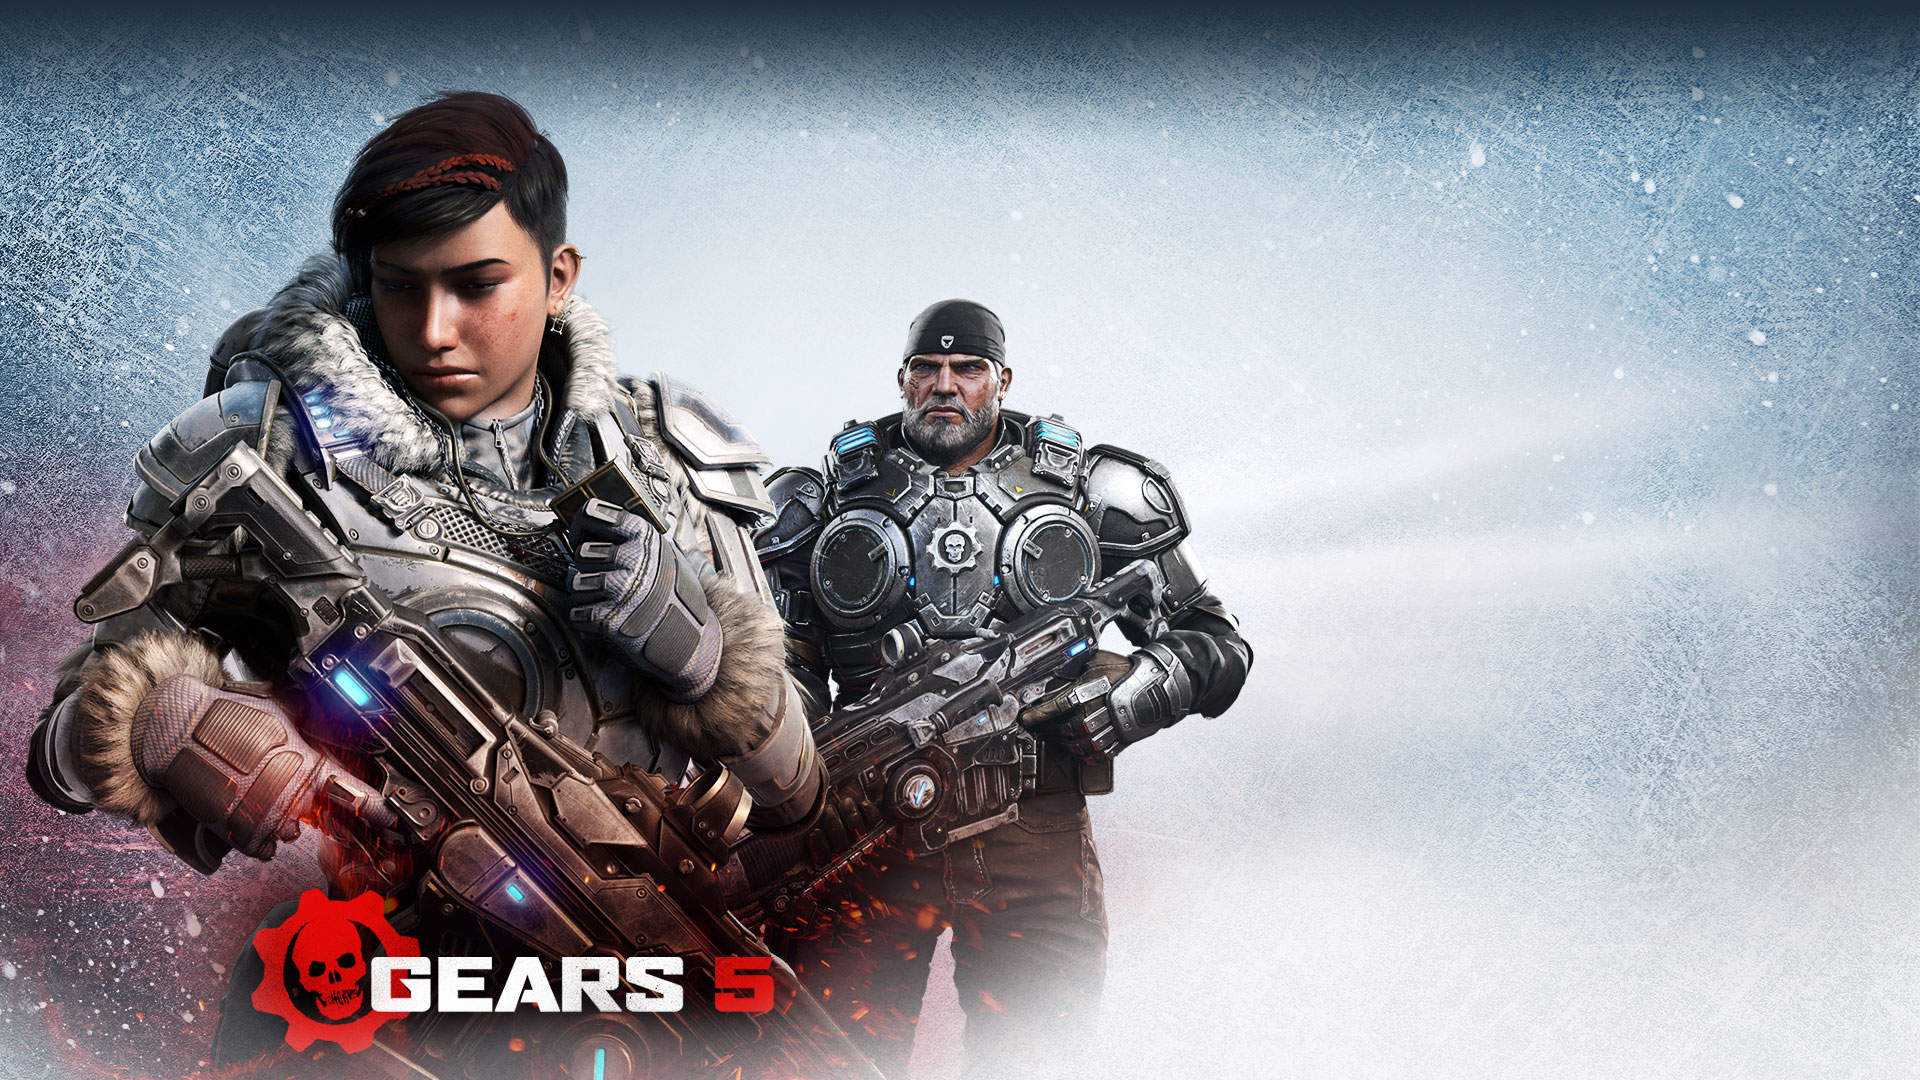 Gears 5, Kait and Marcus